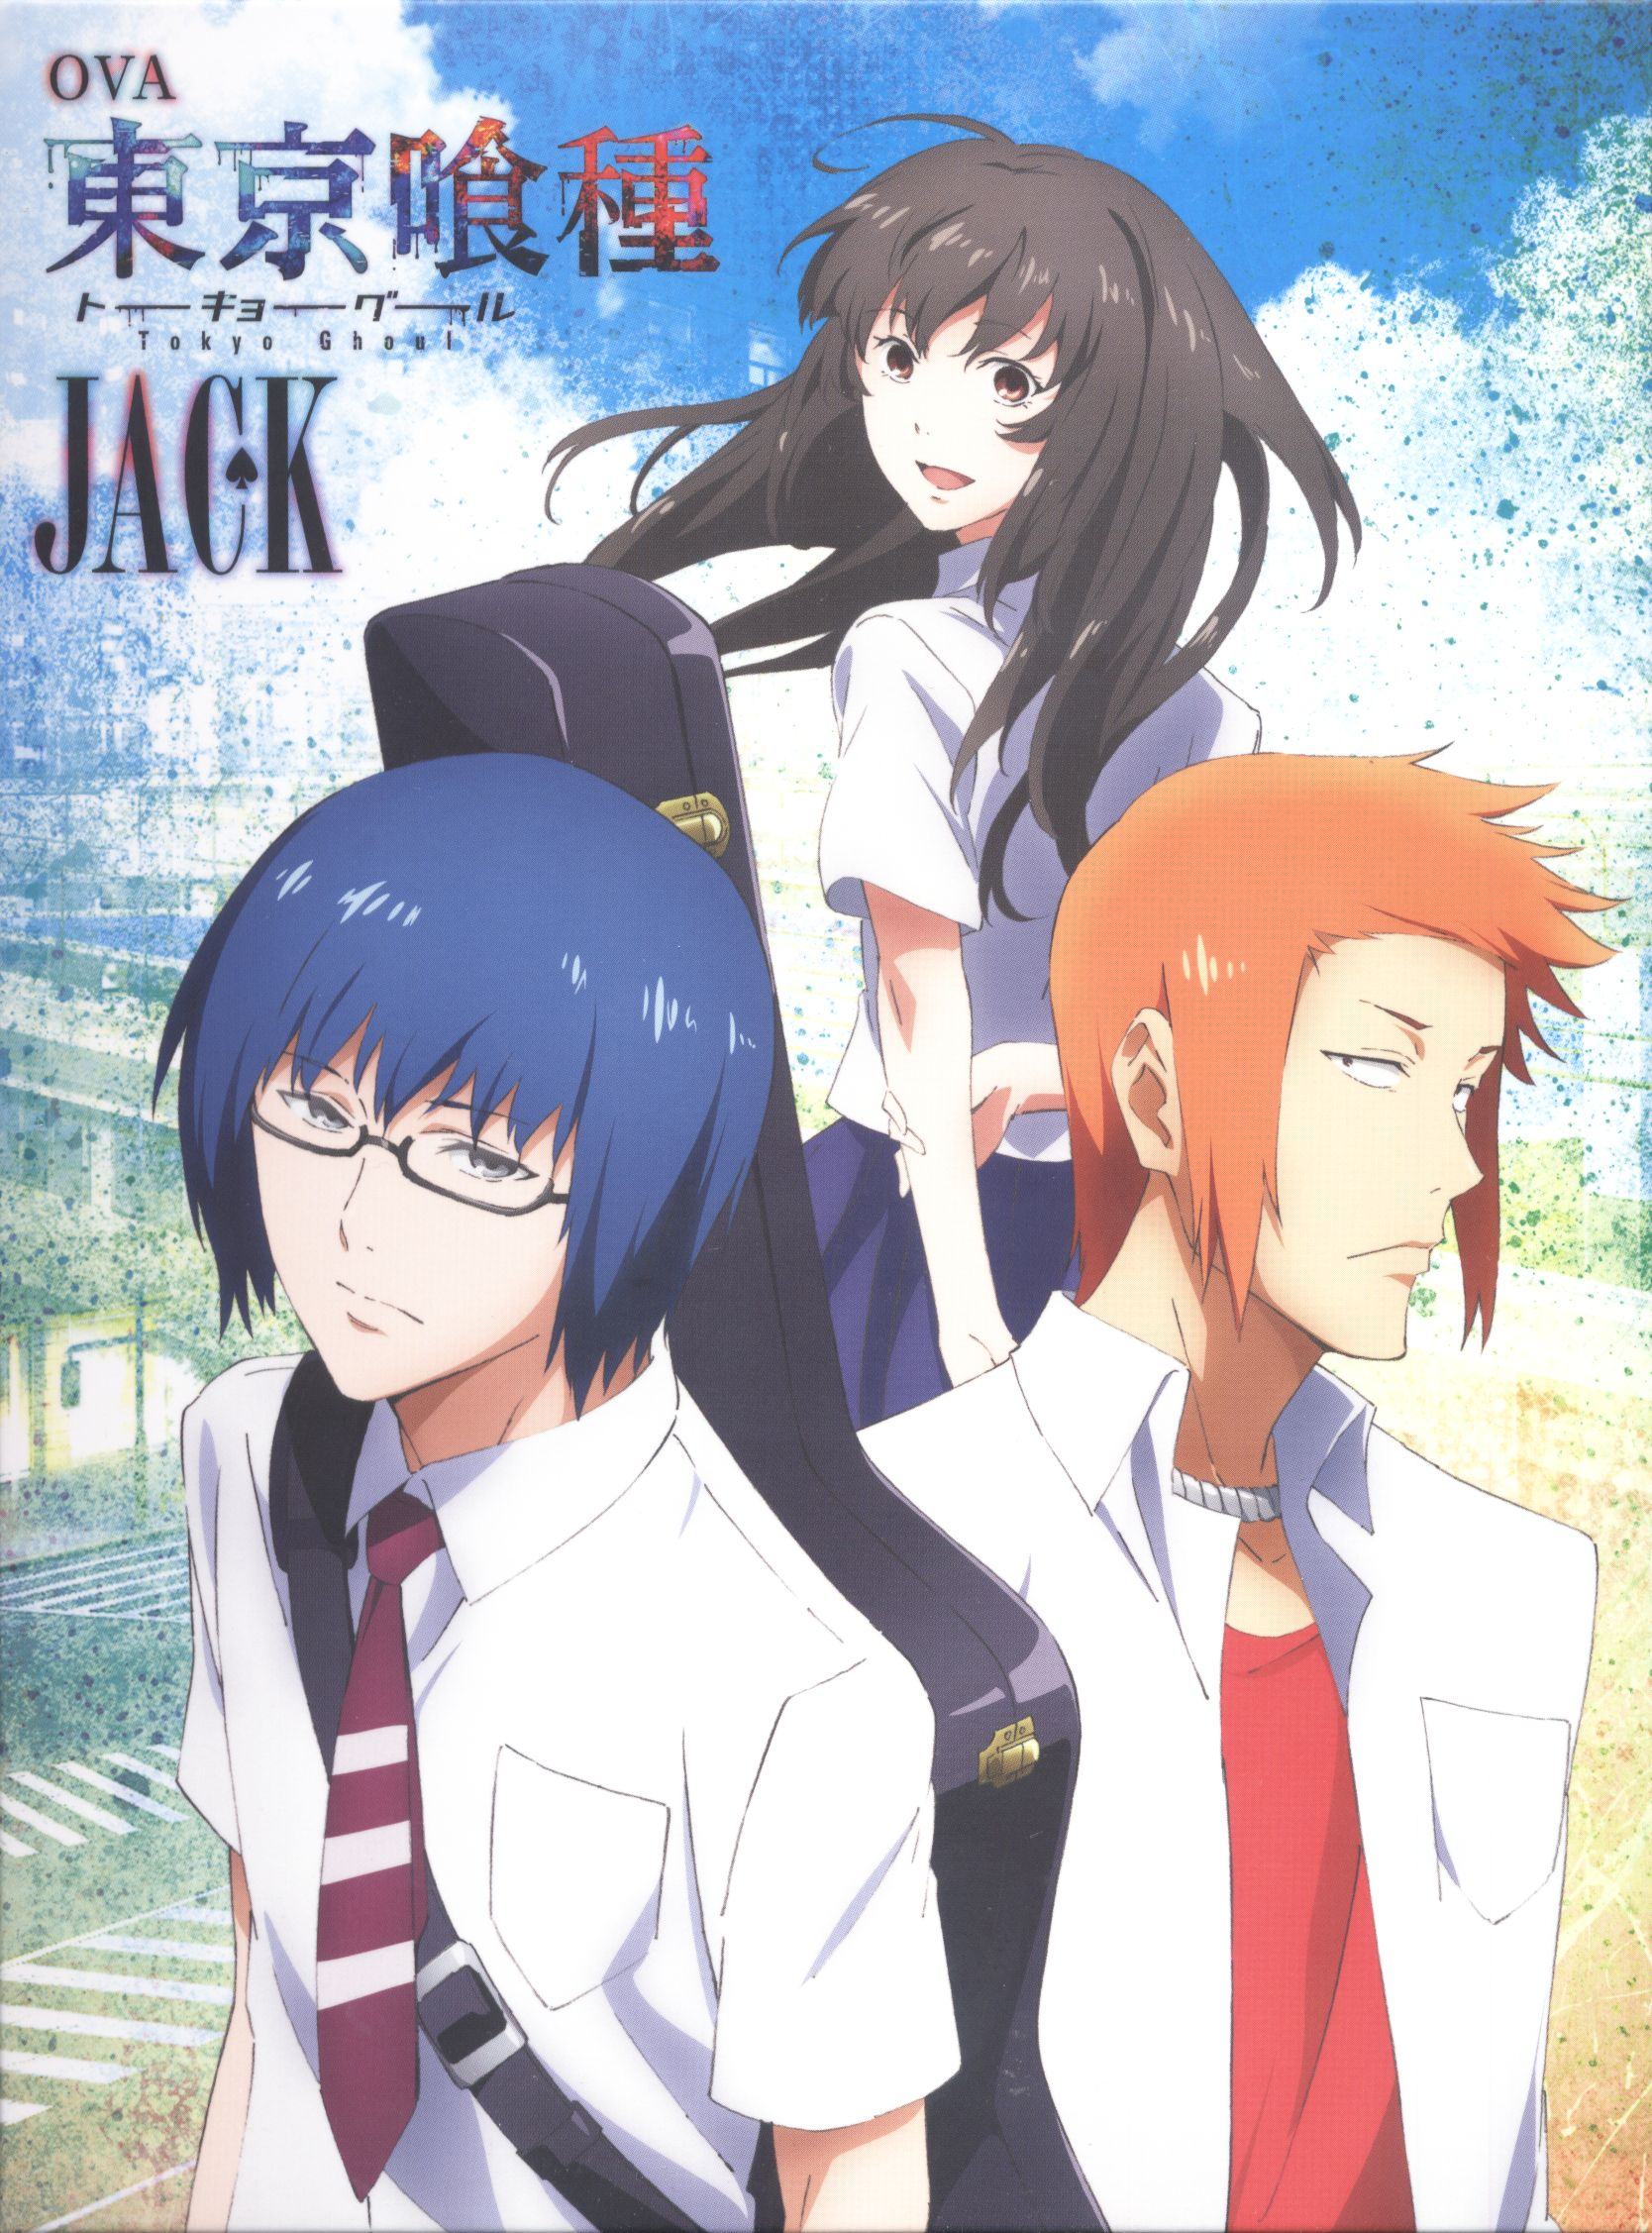 Day 111 Tokyo Ghoul Jack... although only one episode I